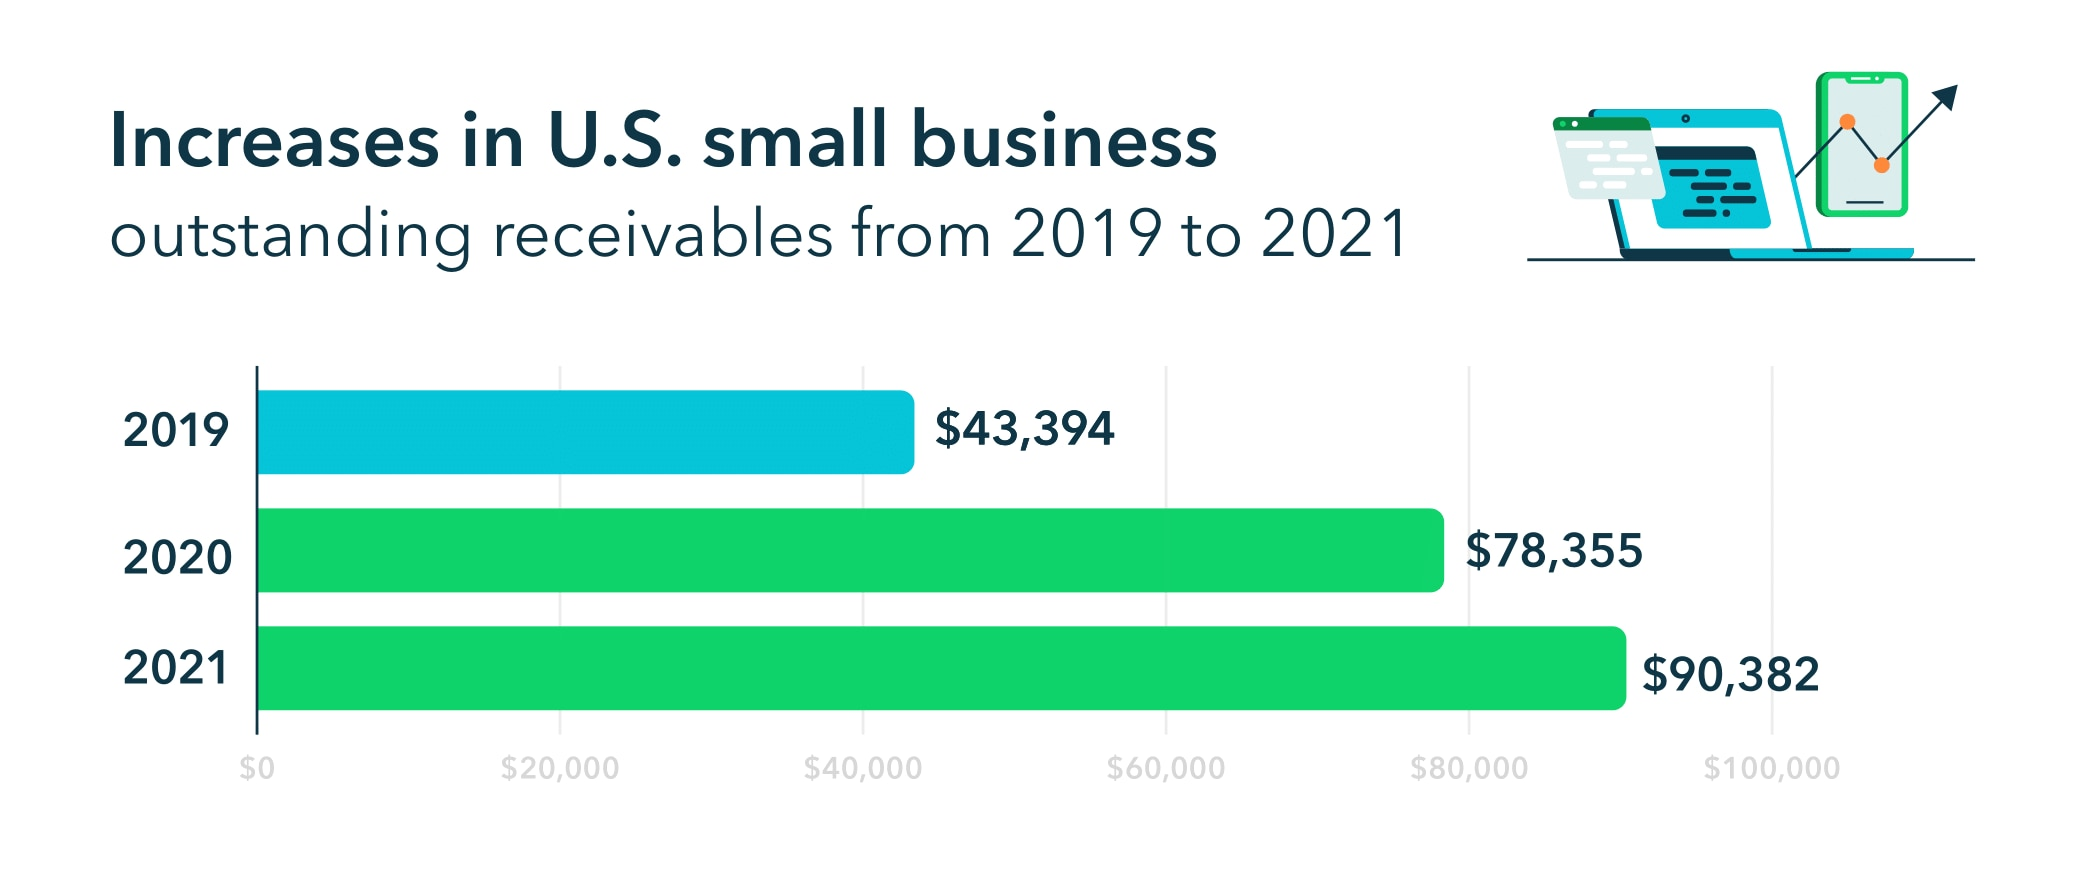 Increases in US small business outstanding receivables from 2019 to 2021.